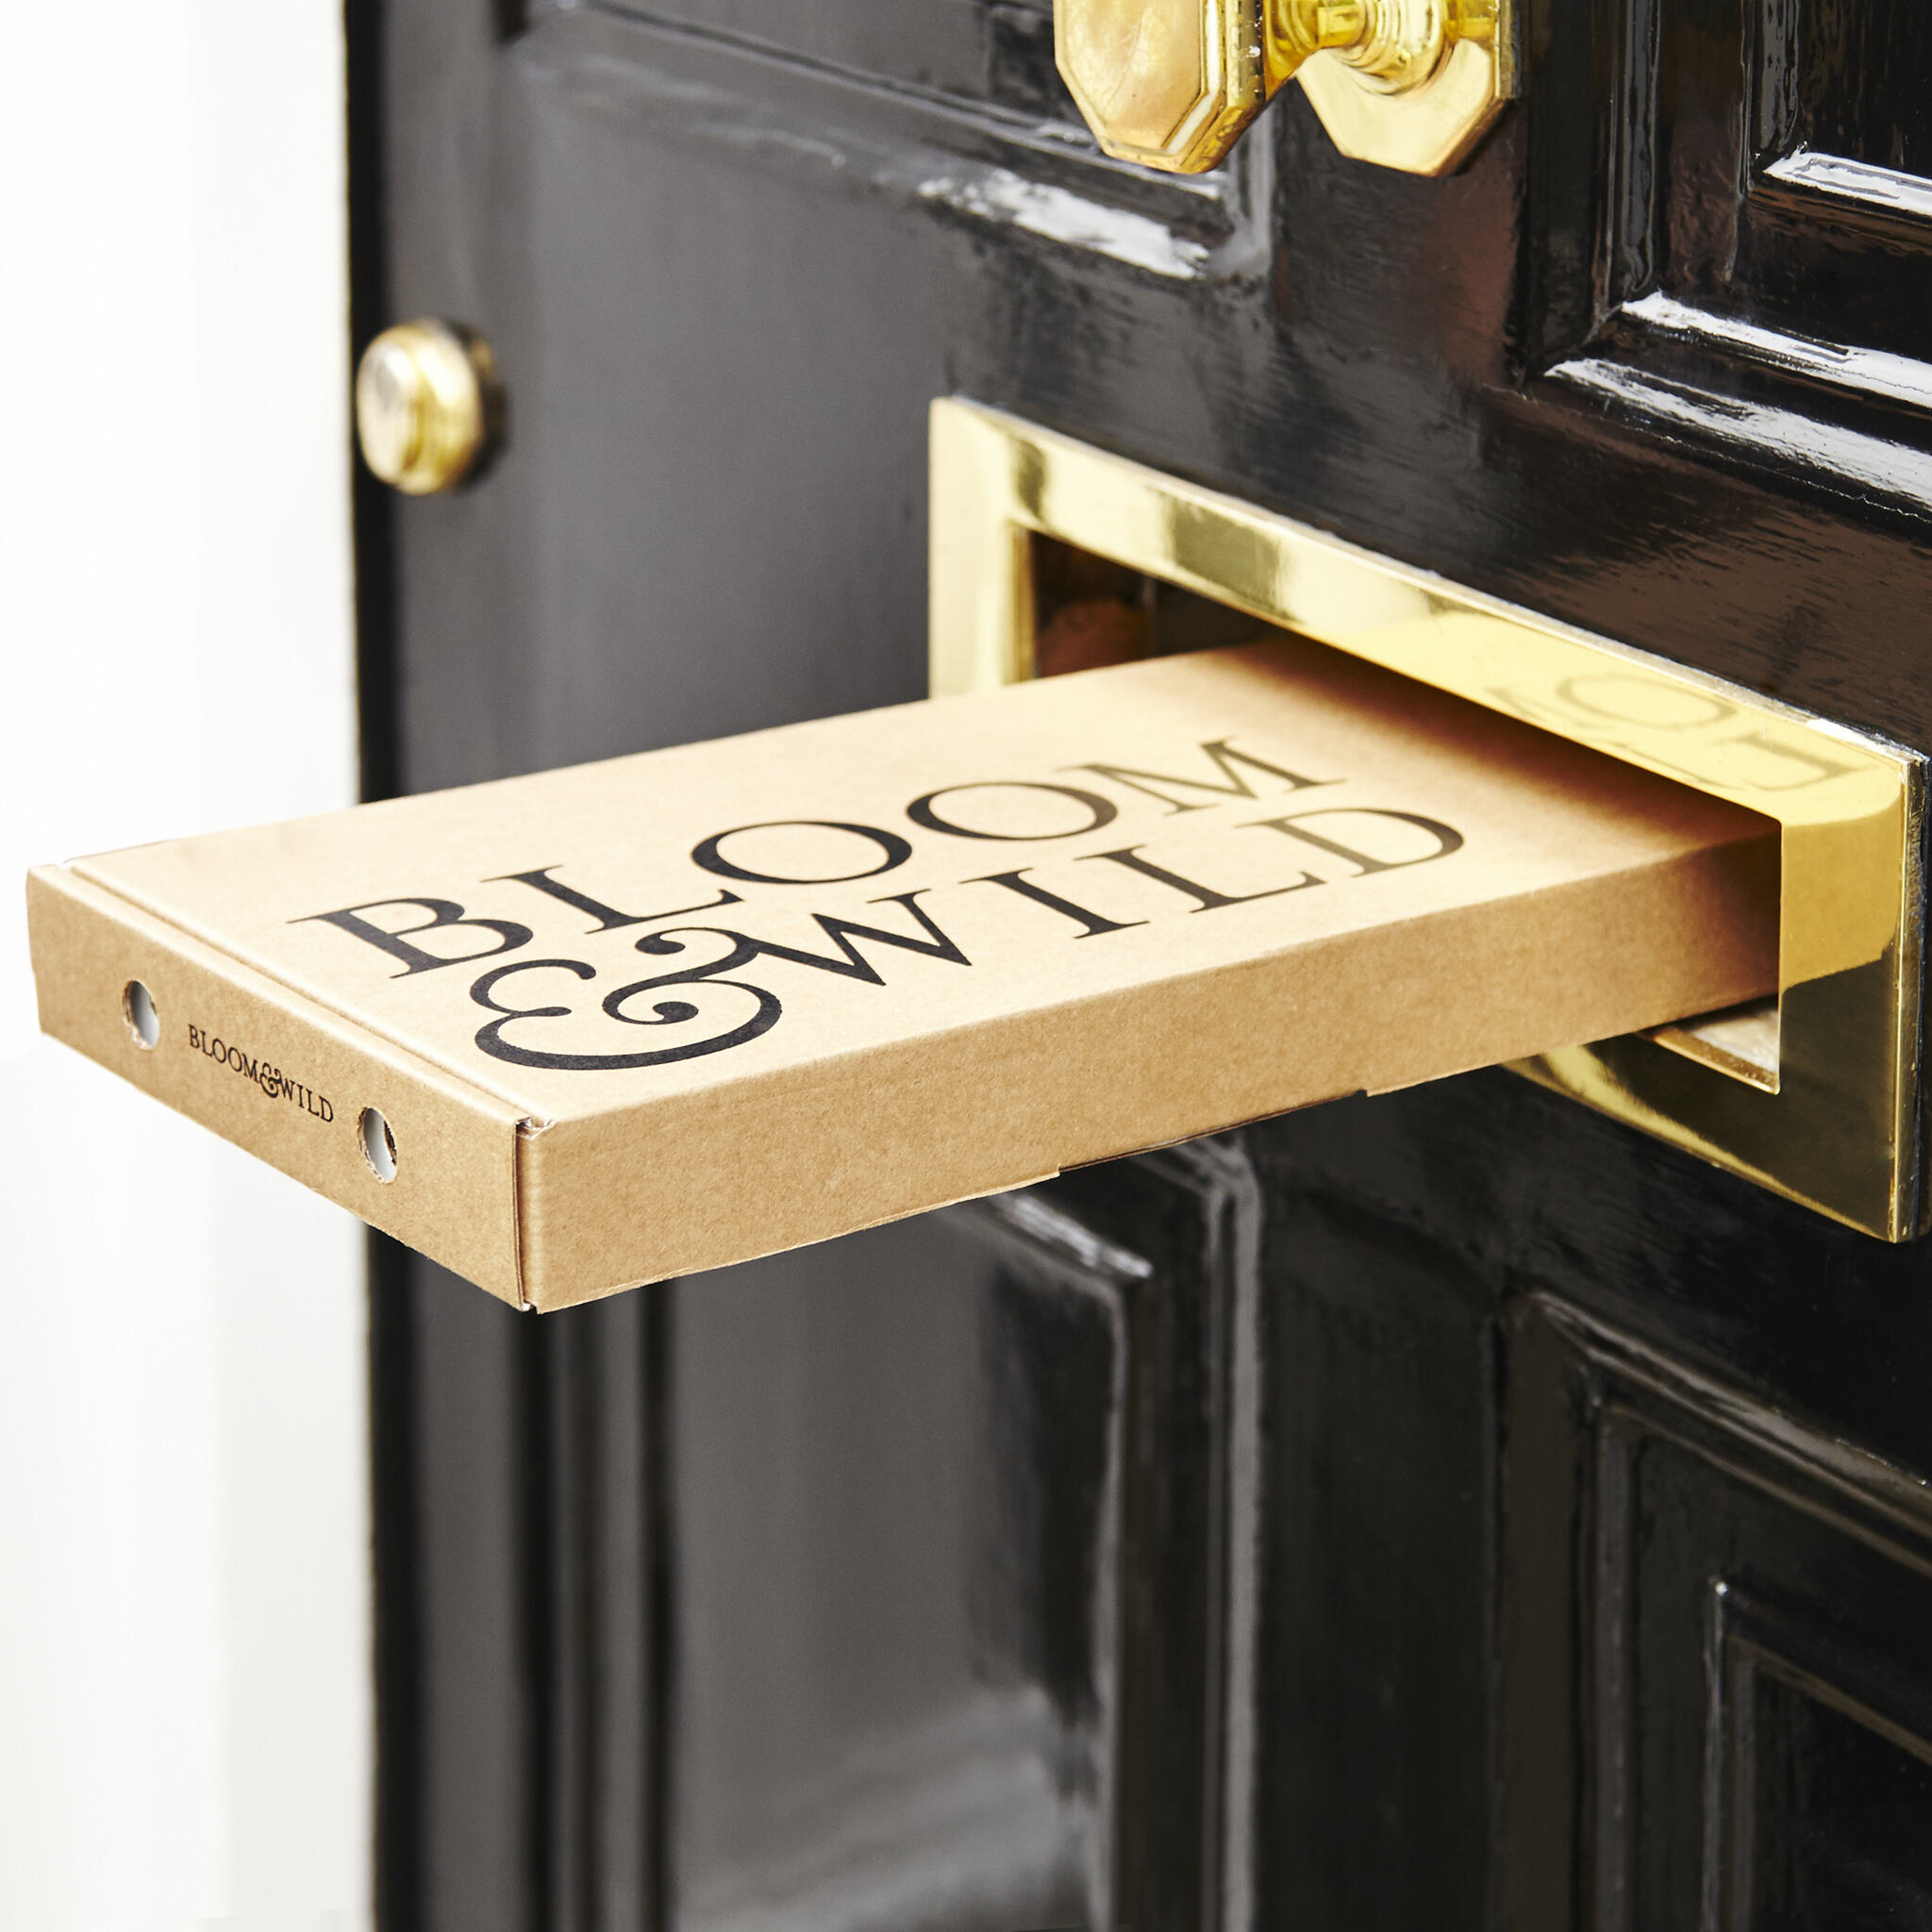 Copy of Letterbox + Door 4